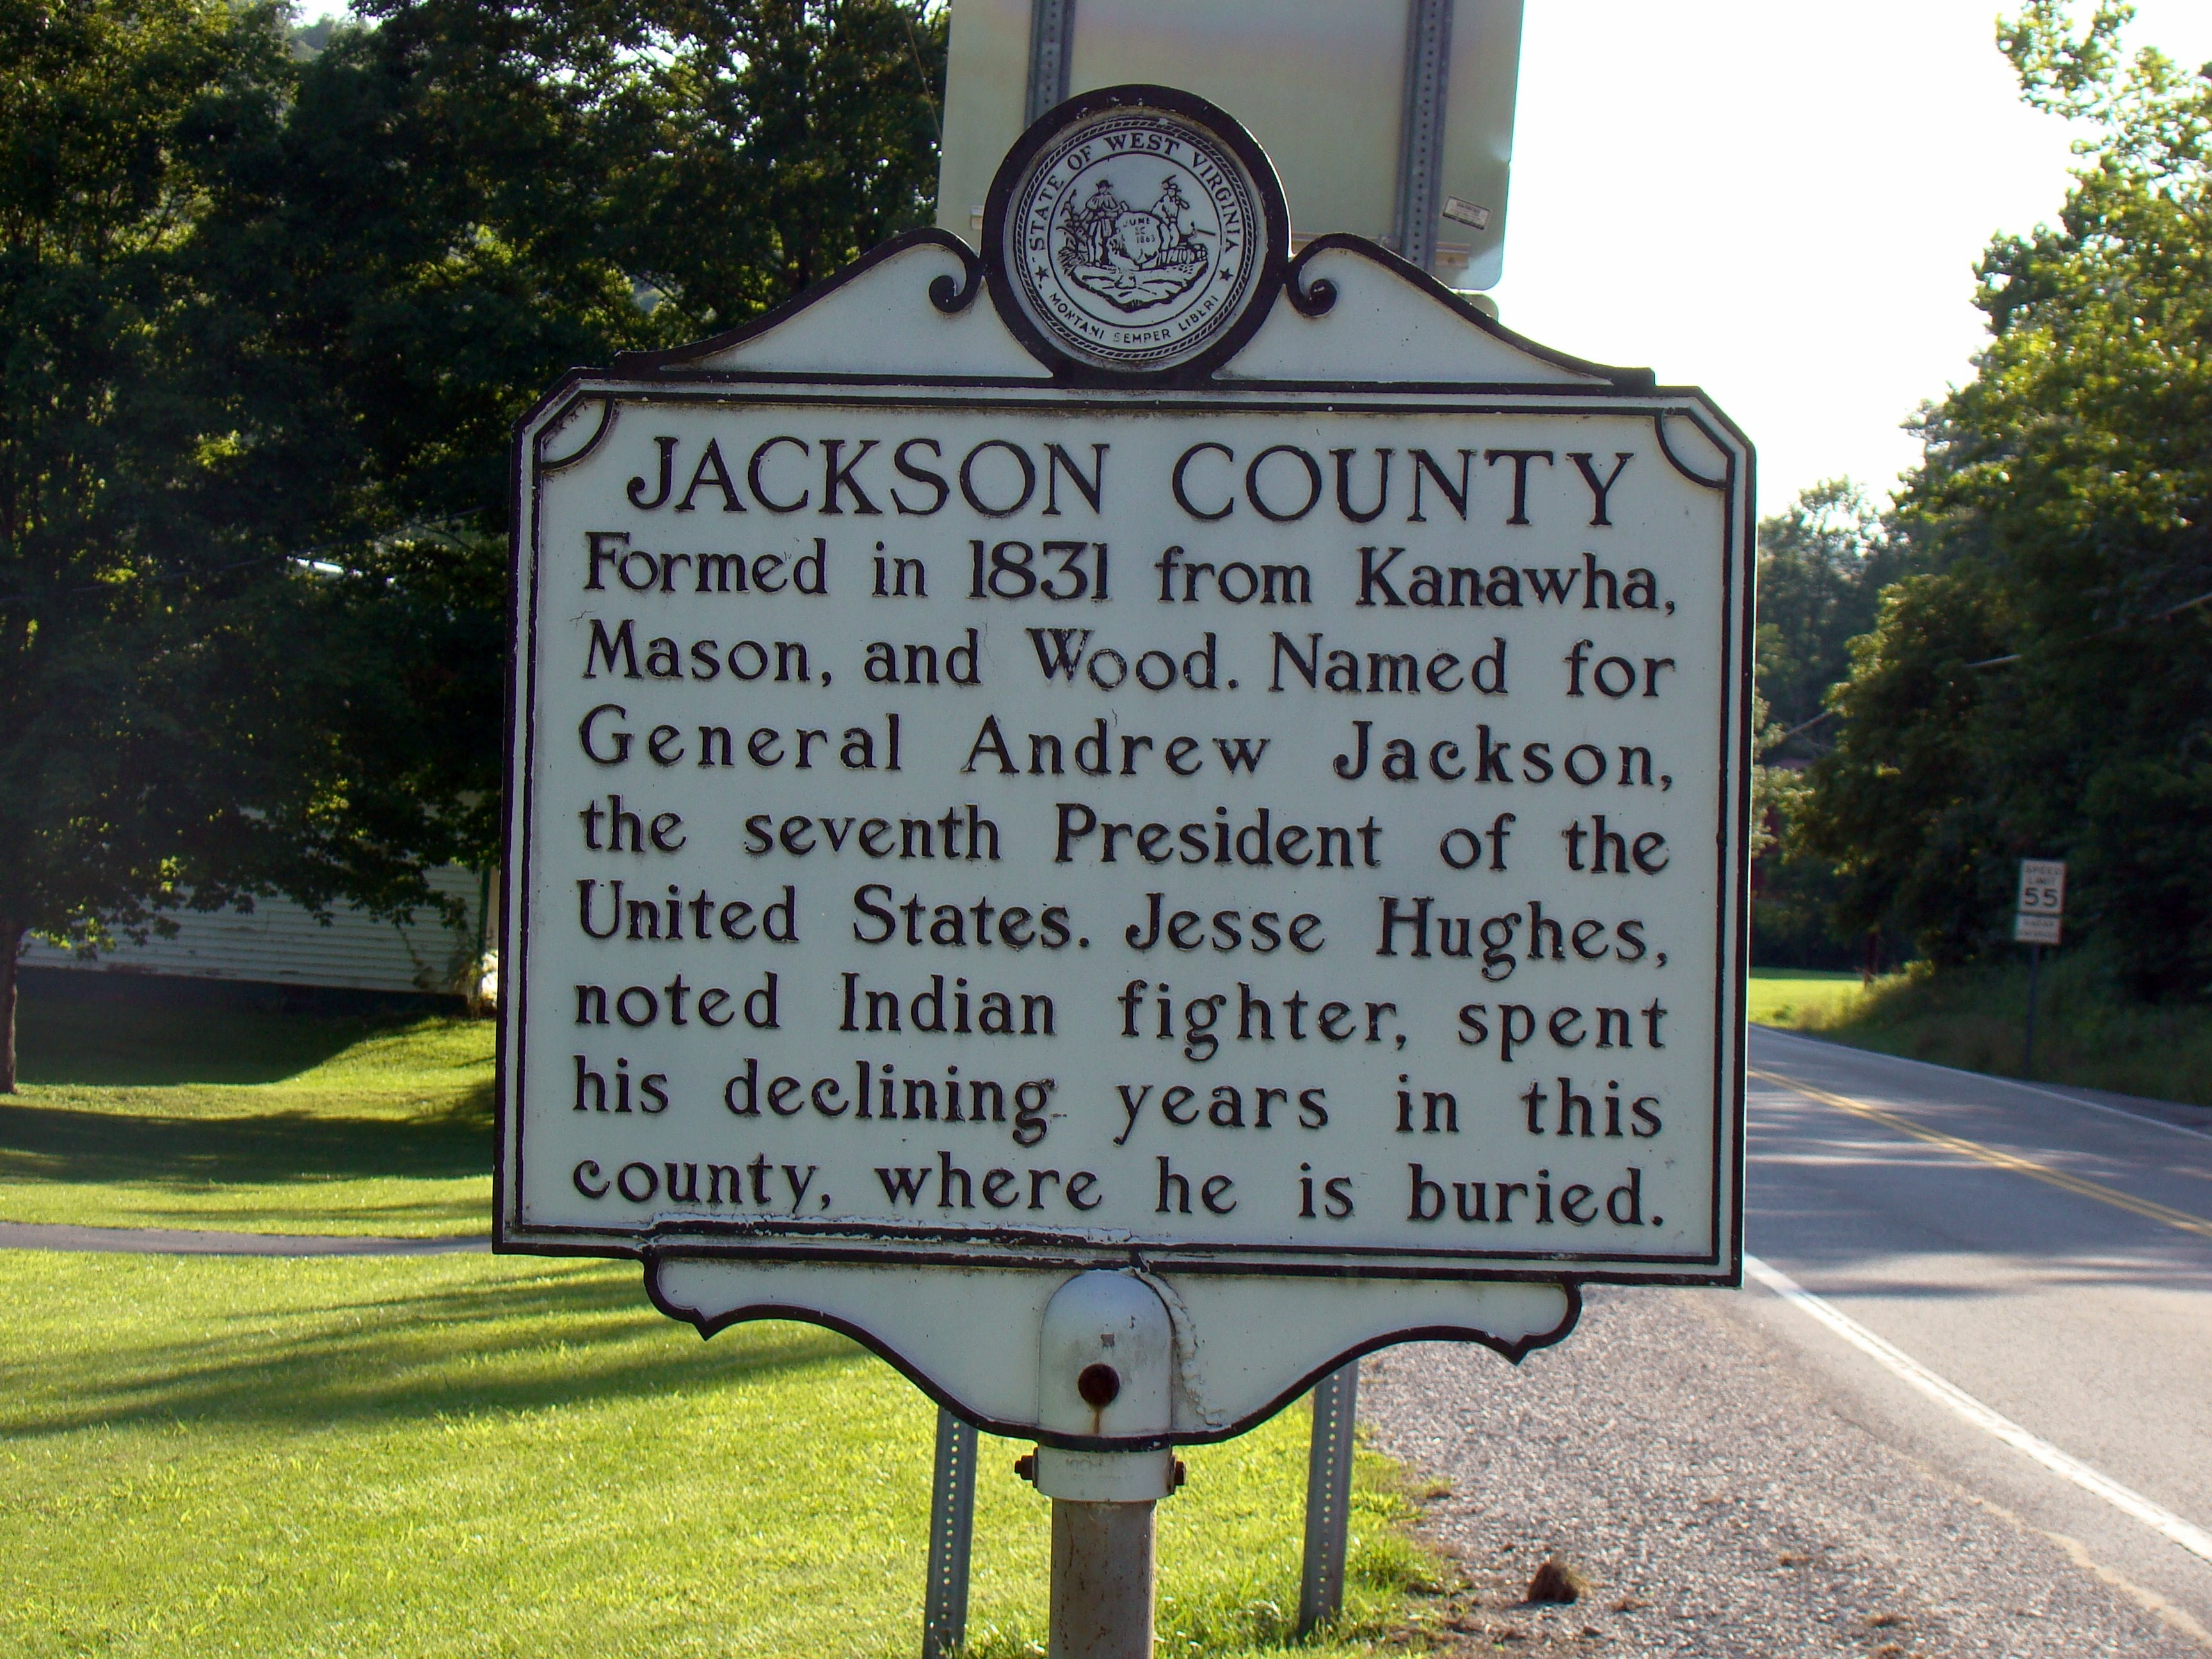 Jackson County Face of Marker